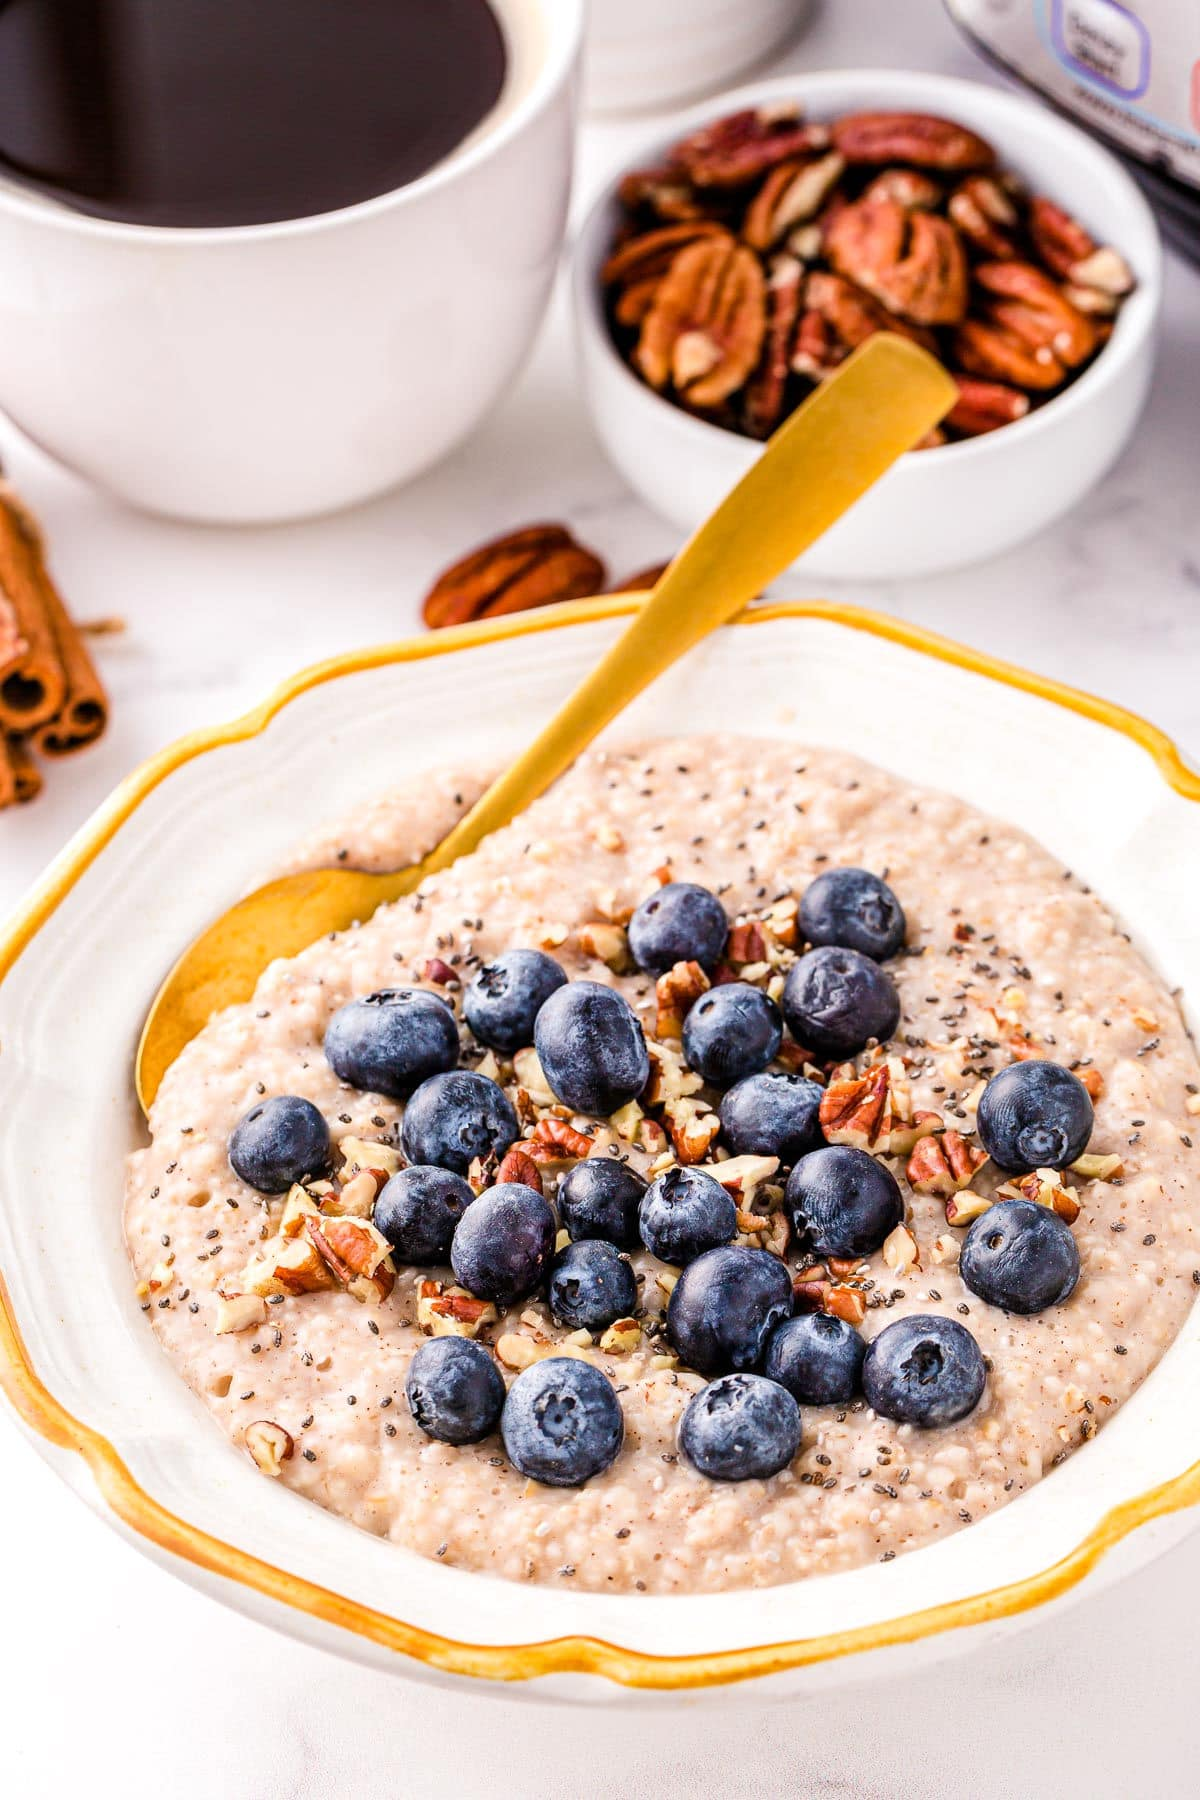 instant pot oats in white bowl with gold rim topped with blueberries and ground cinnamon. cup of coffee and small bowl of pecans in background.